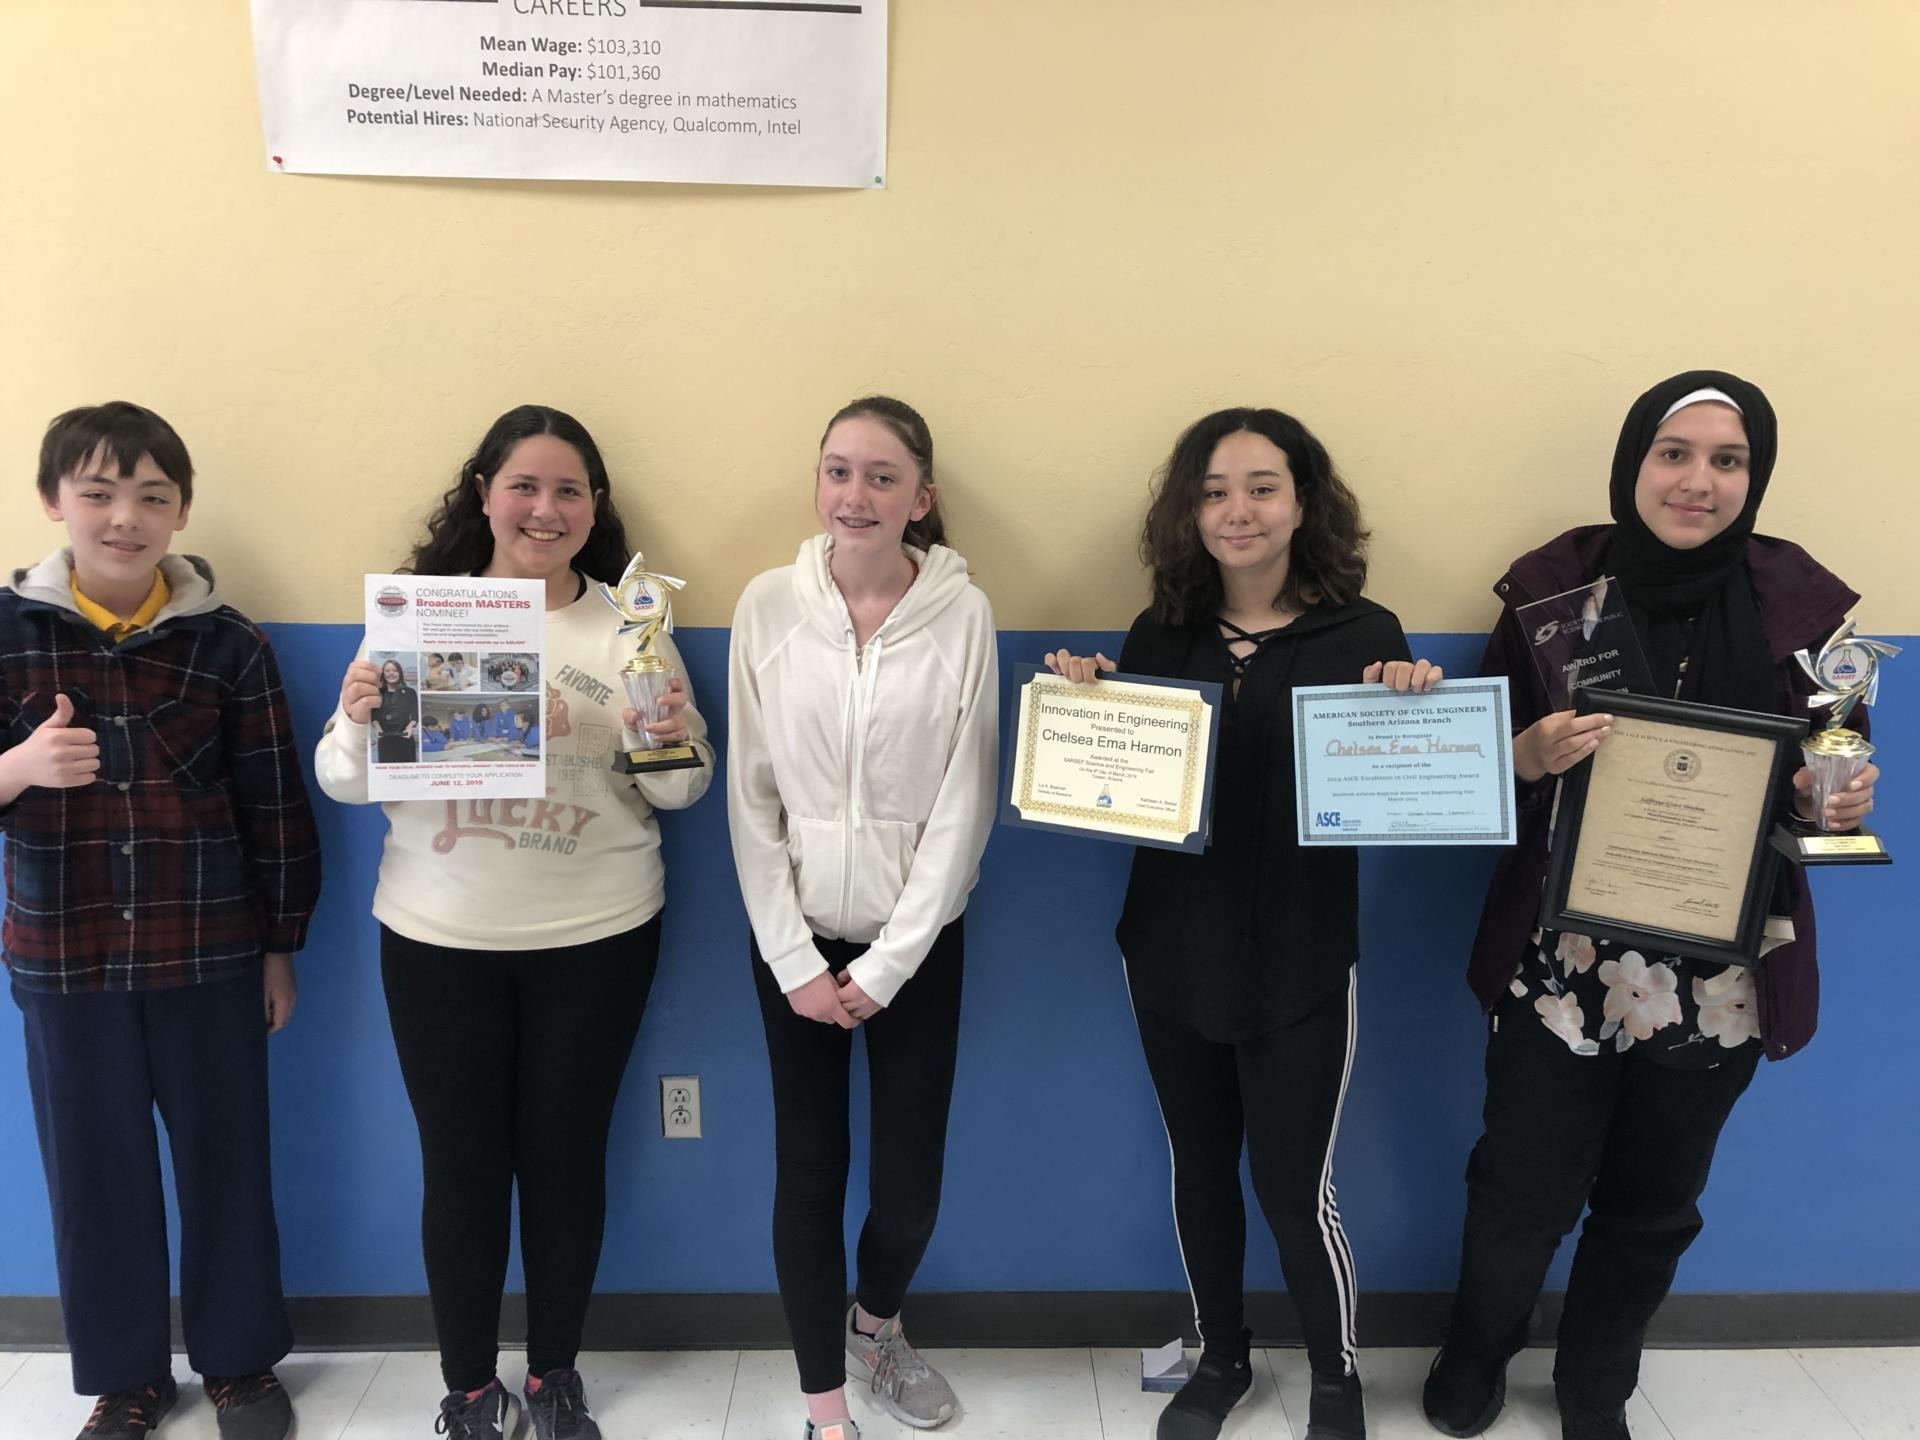 Middle School Students Pose with Awards